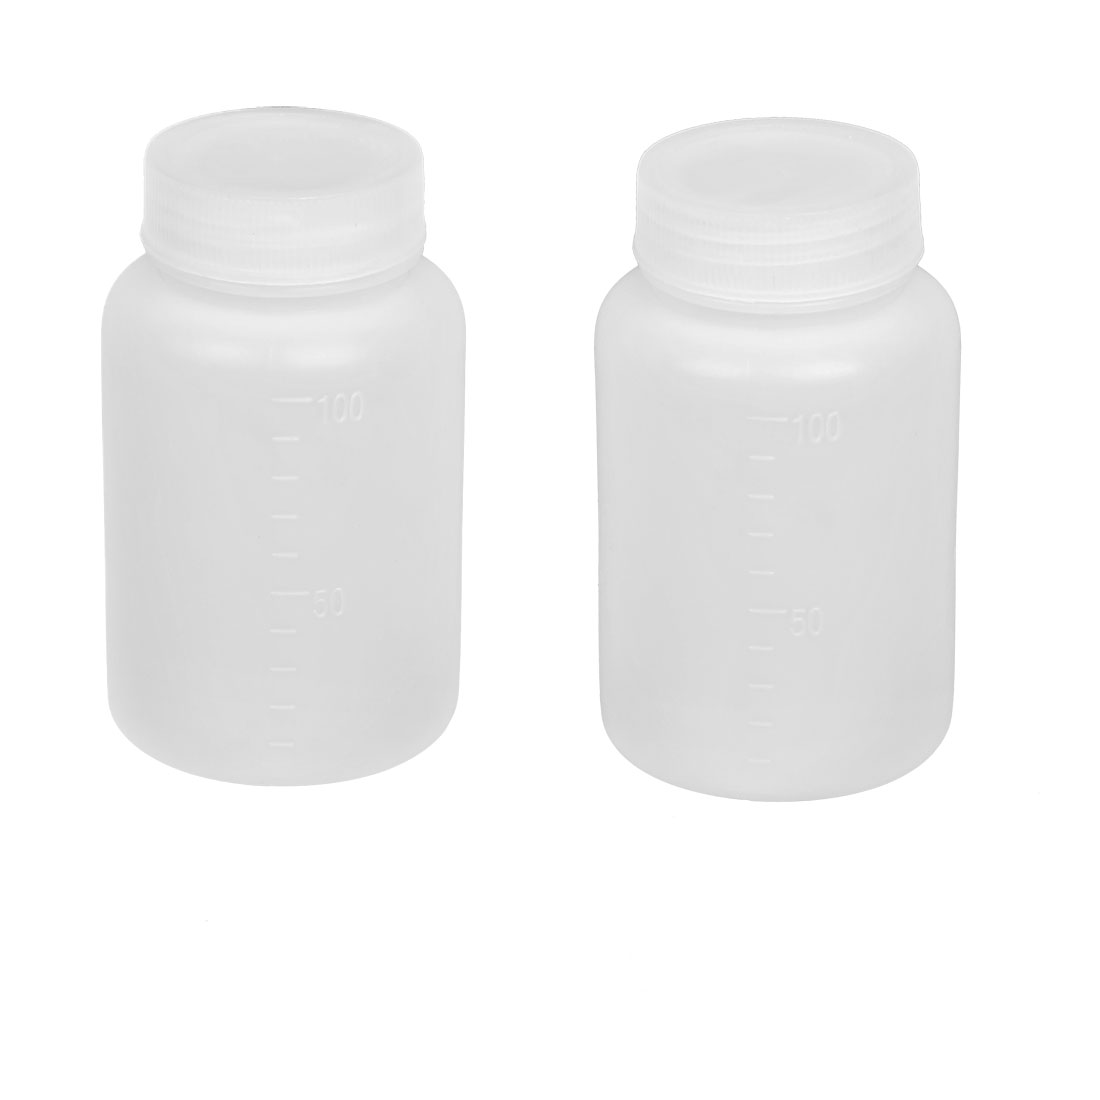 2 Pcs Laboratory Double Cap Leakproof Plastic Widemouth Bottle White 100mL